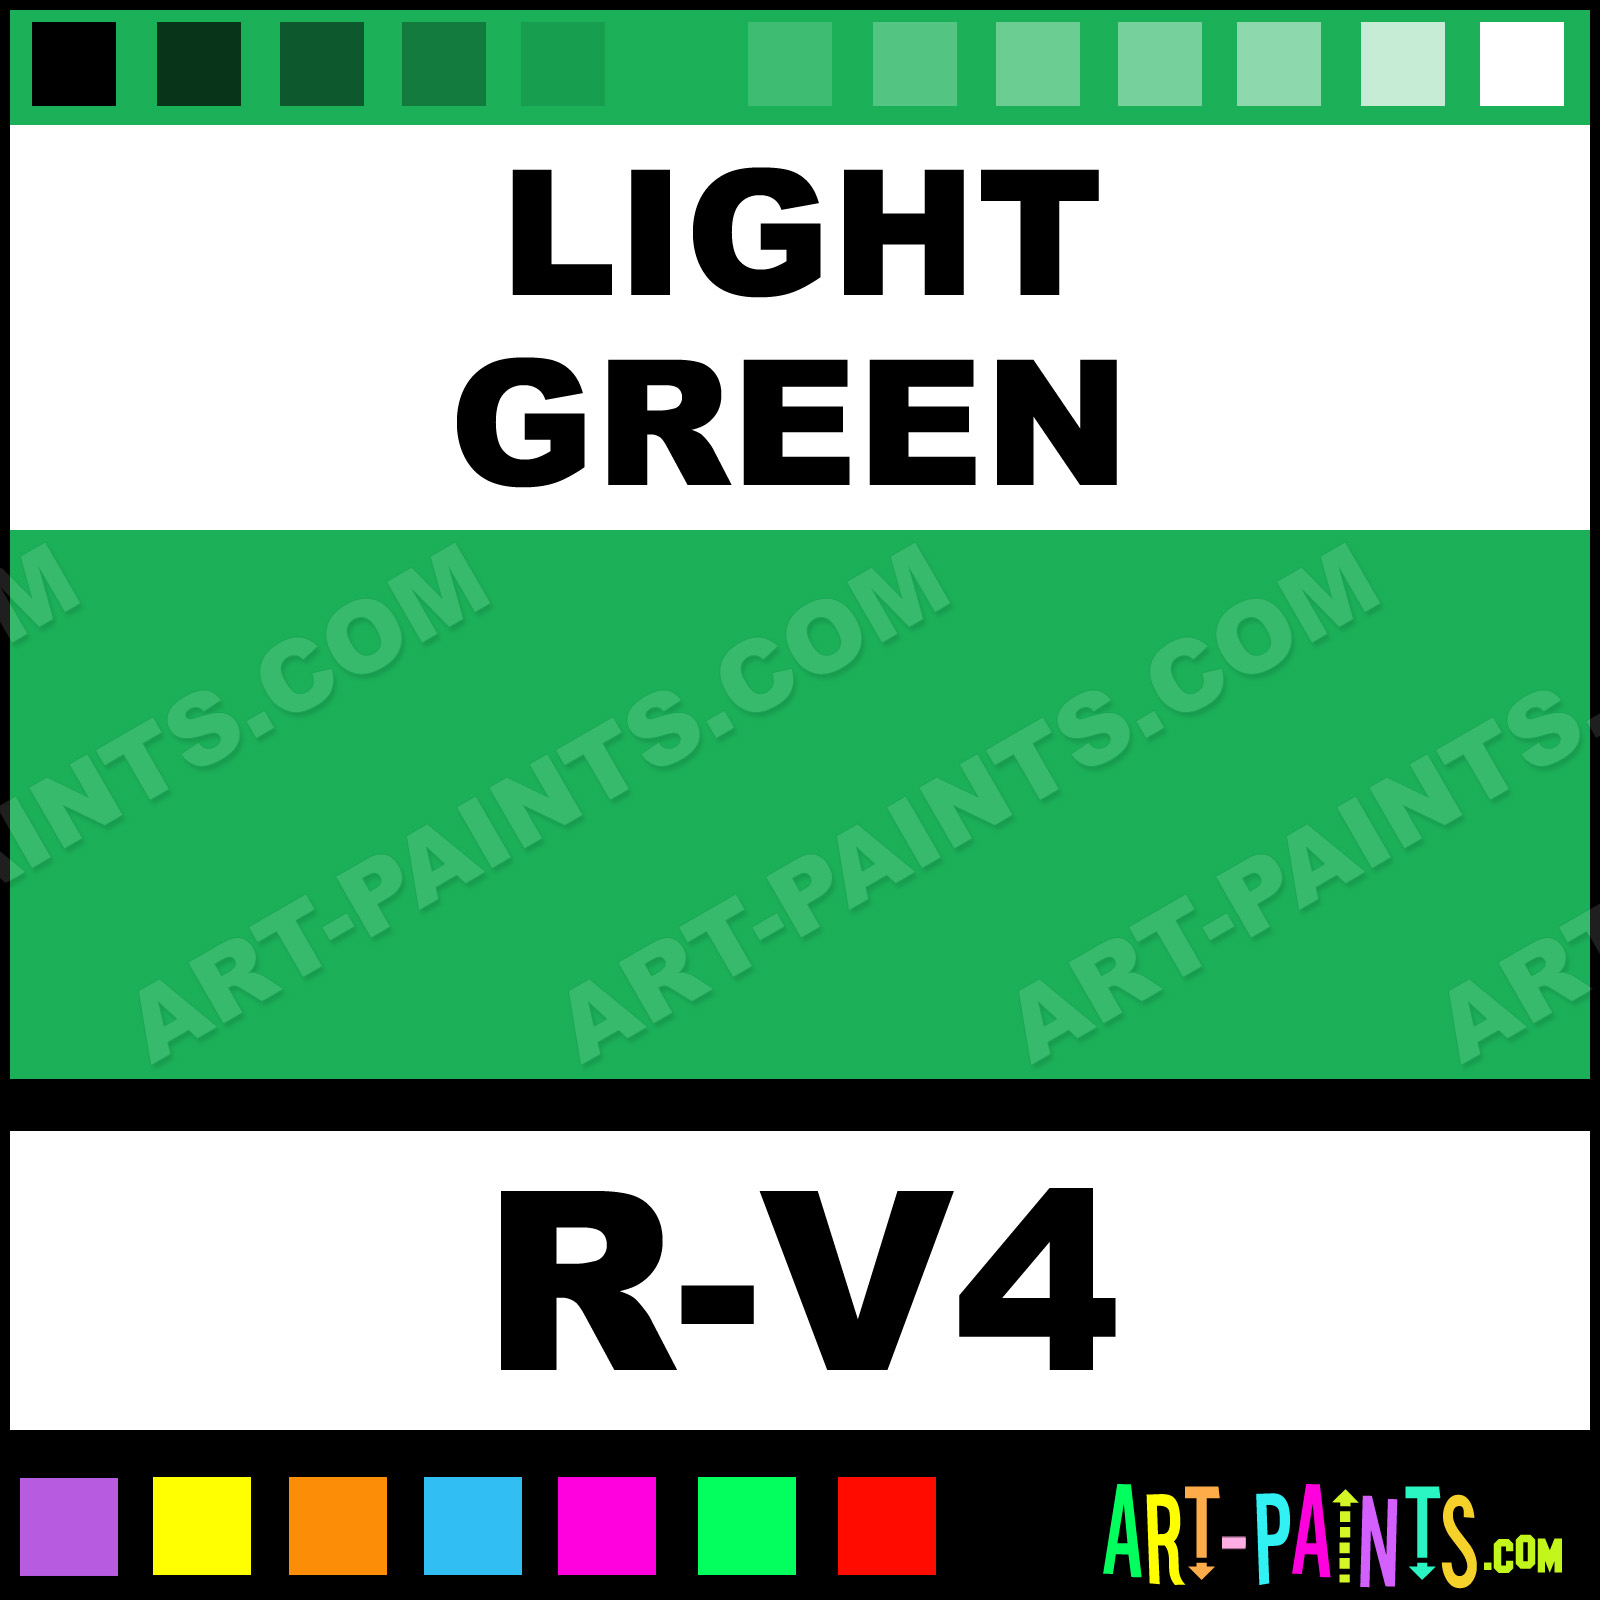 Light Green Aerosol Spray Paints Aerosol Decorative Paints R V4 Light Green Paint